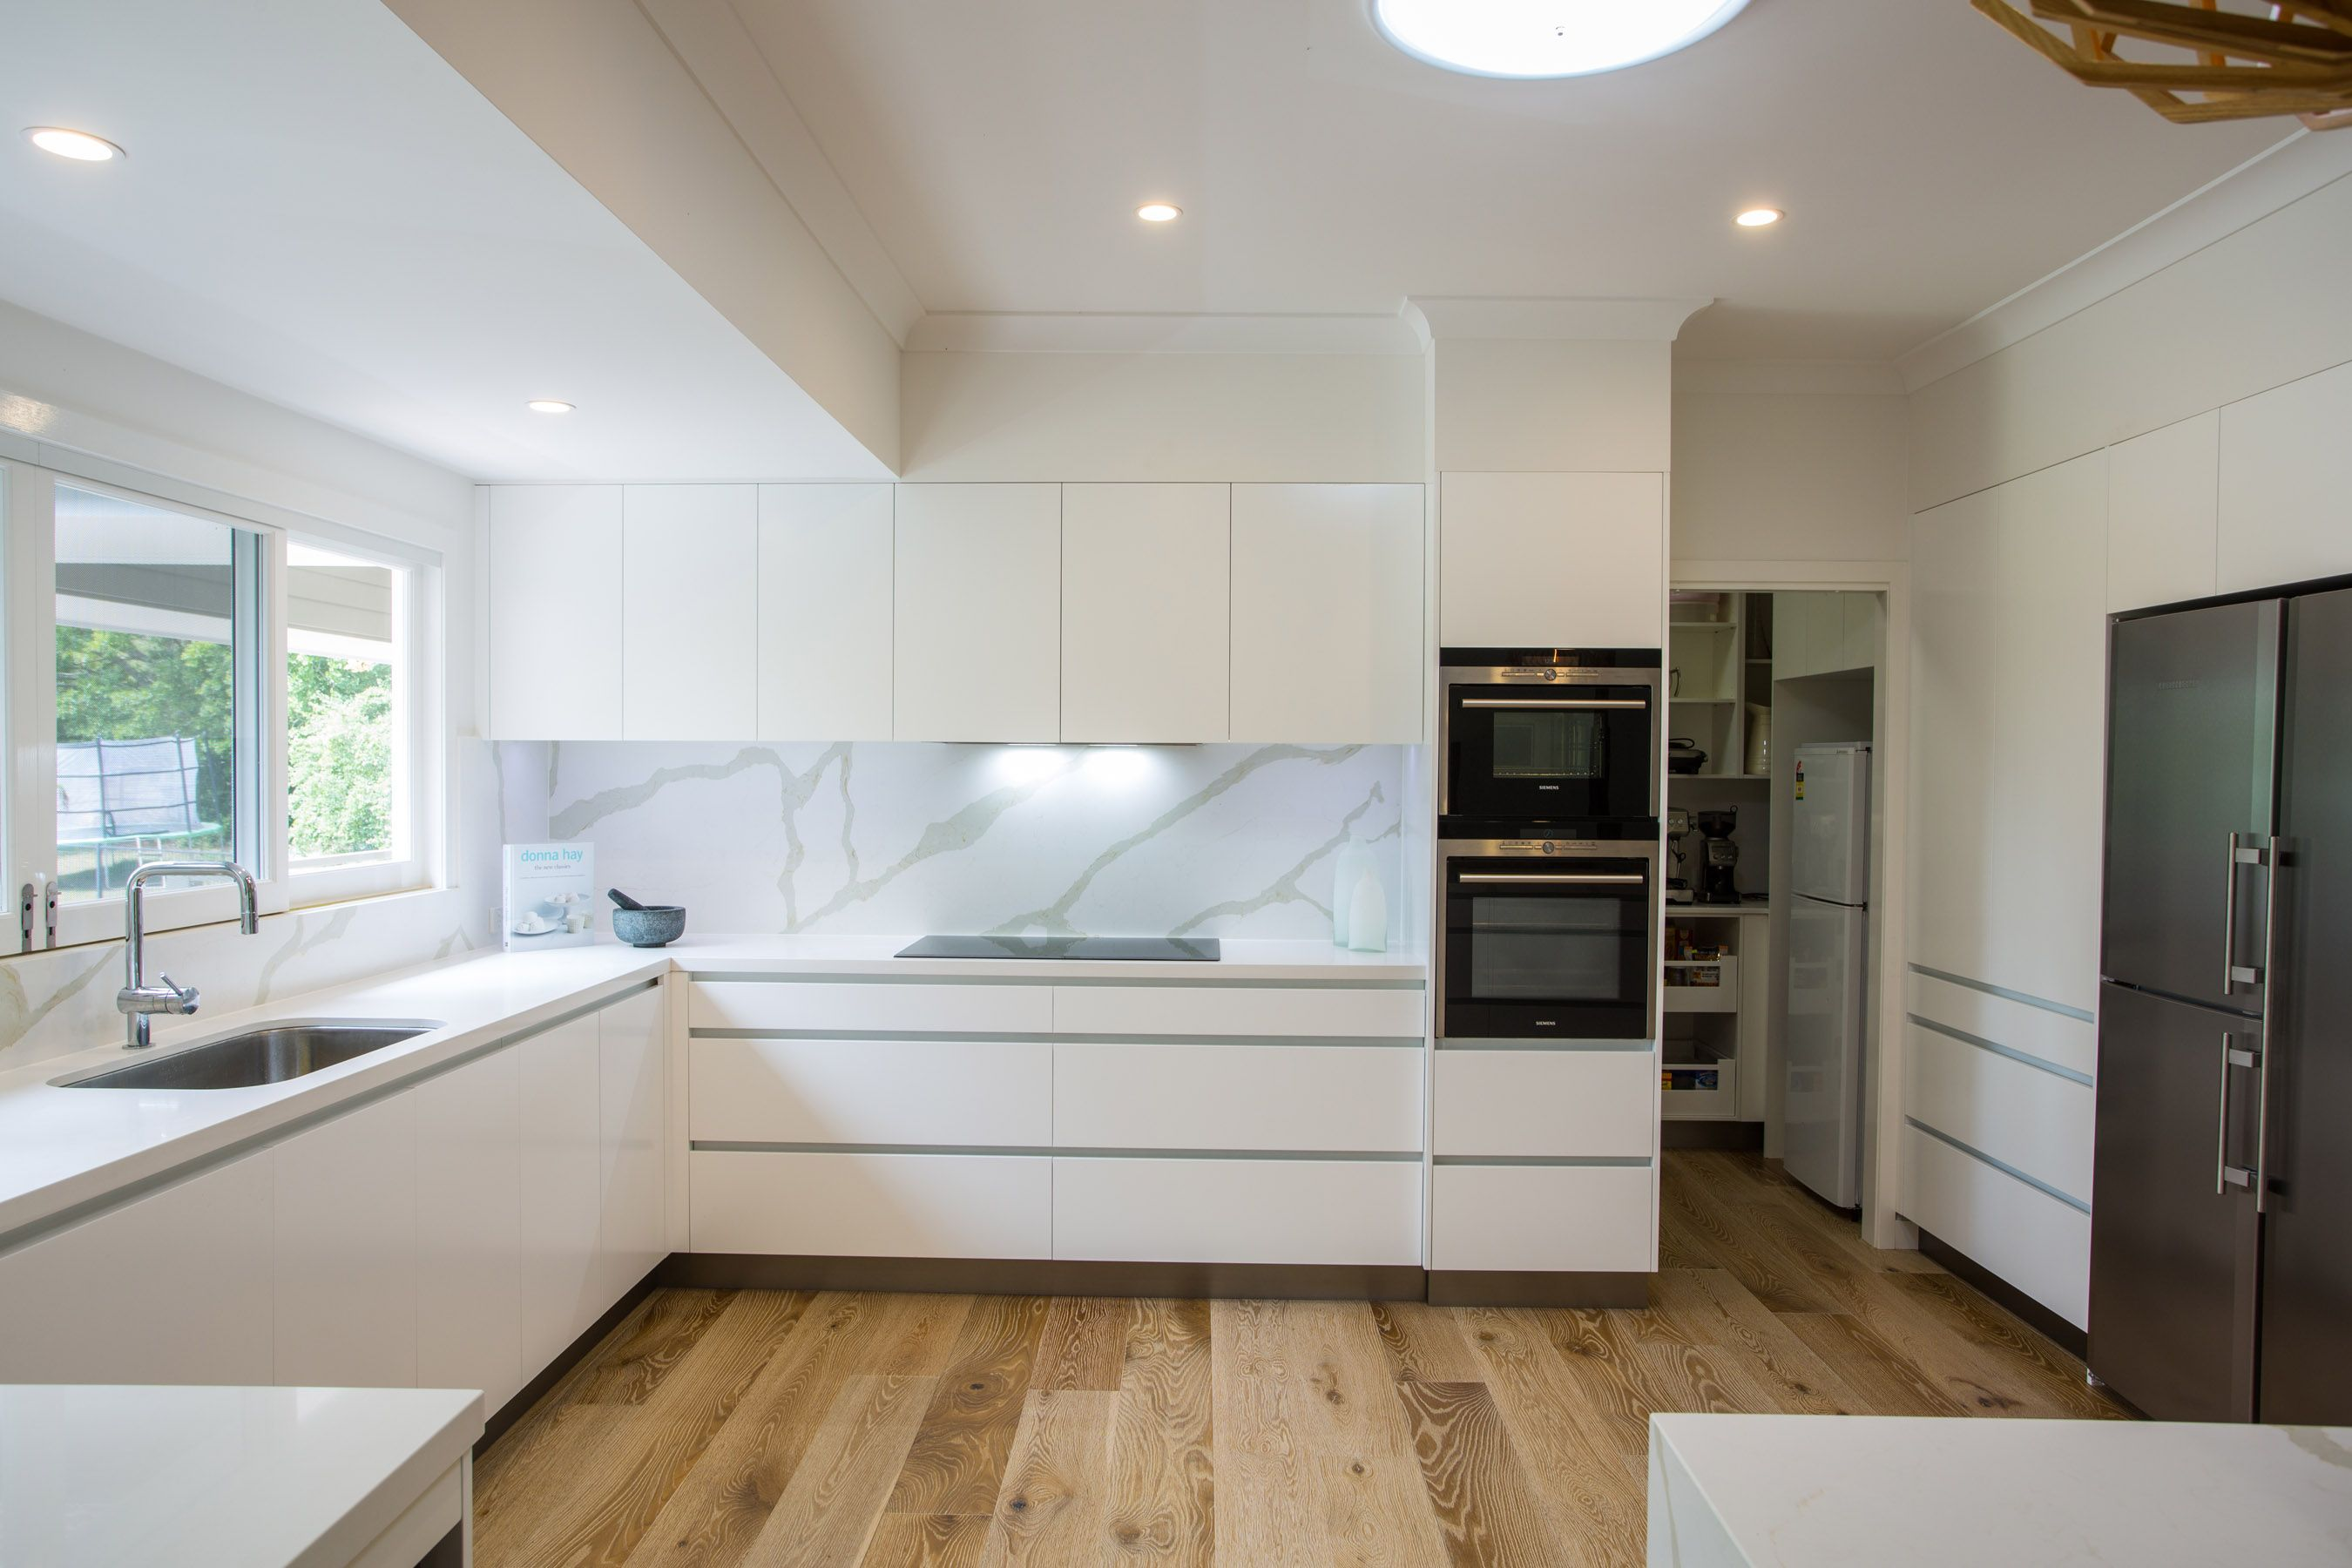 luxury contemporary kitchen with self contained butlers pantry through door way